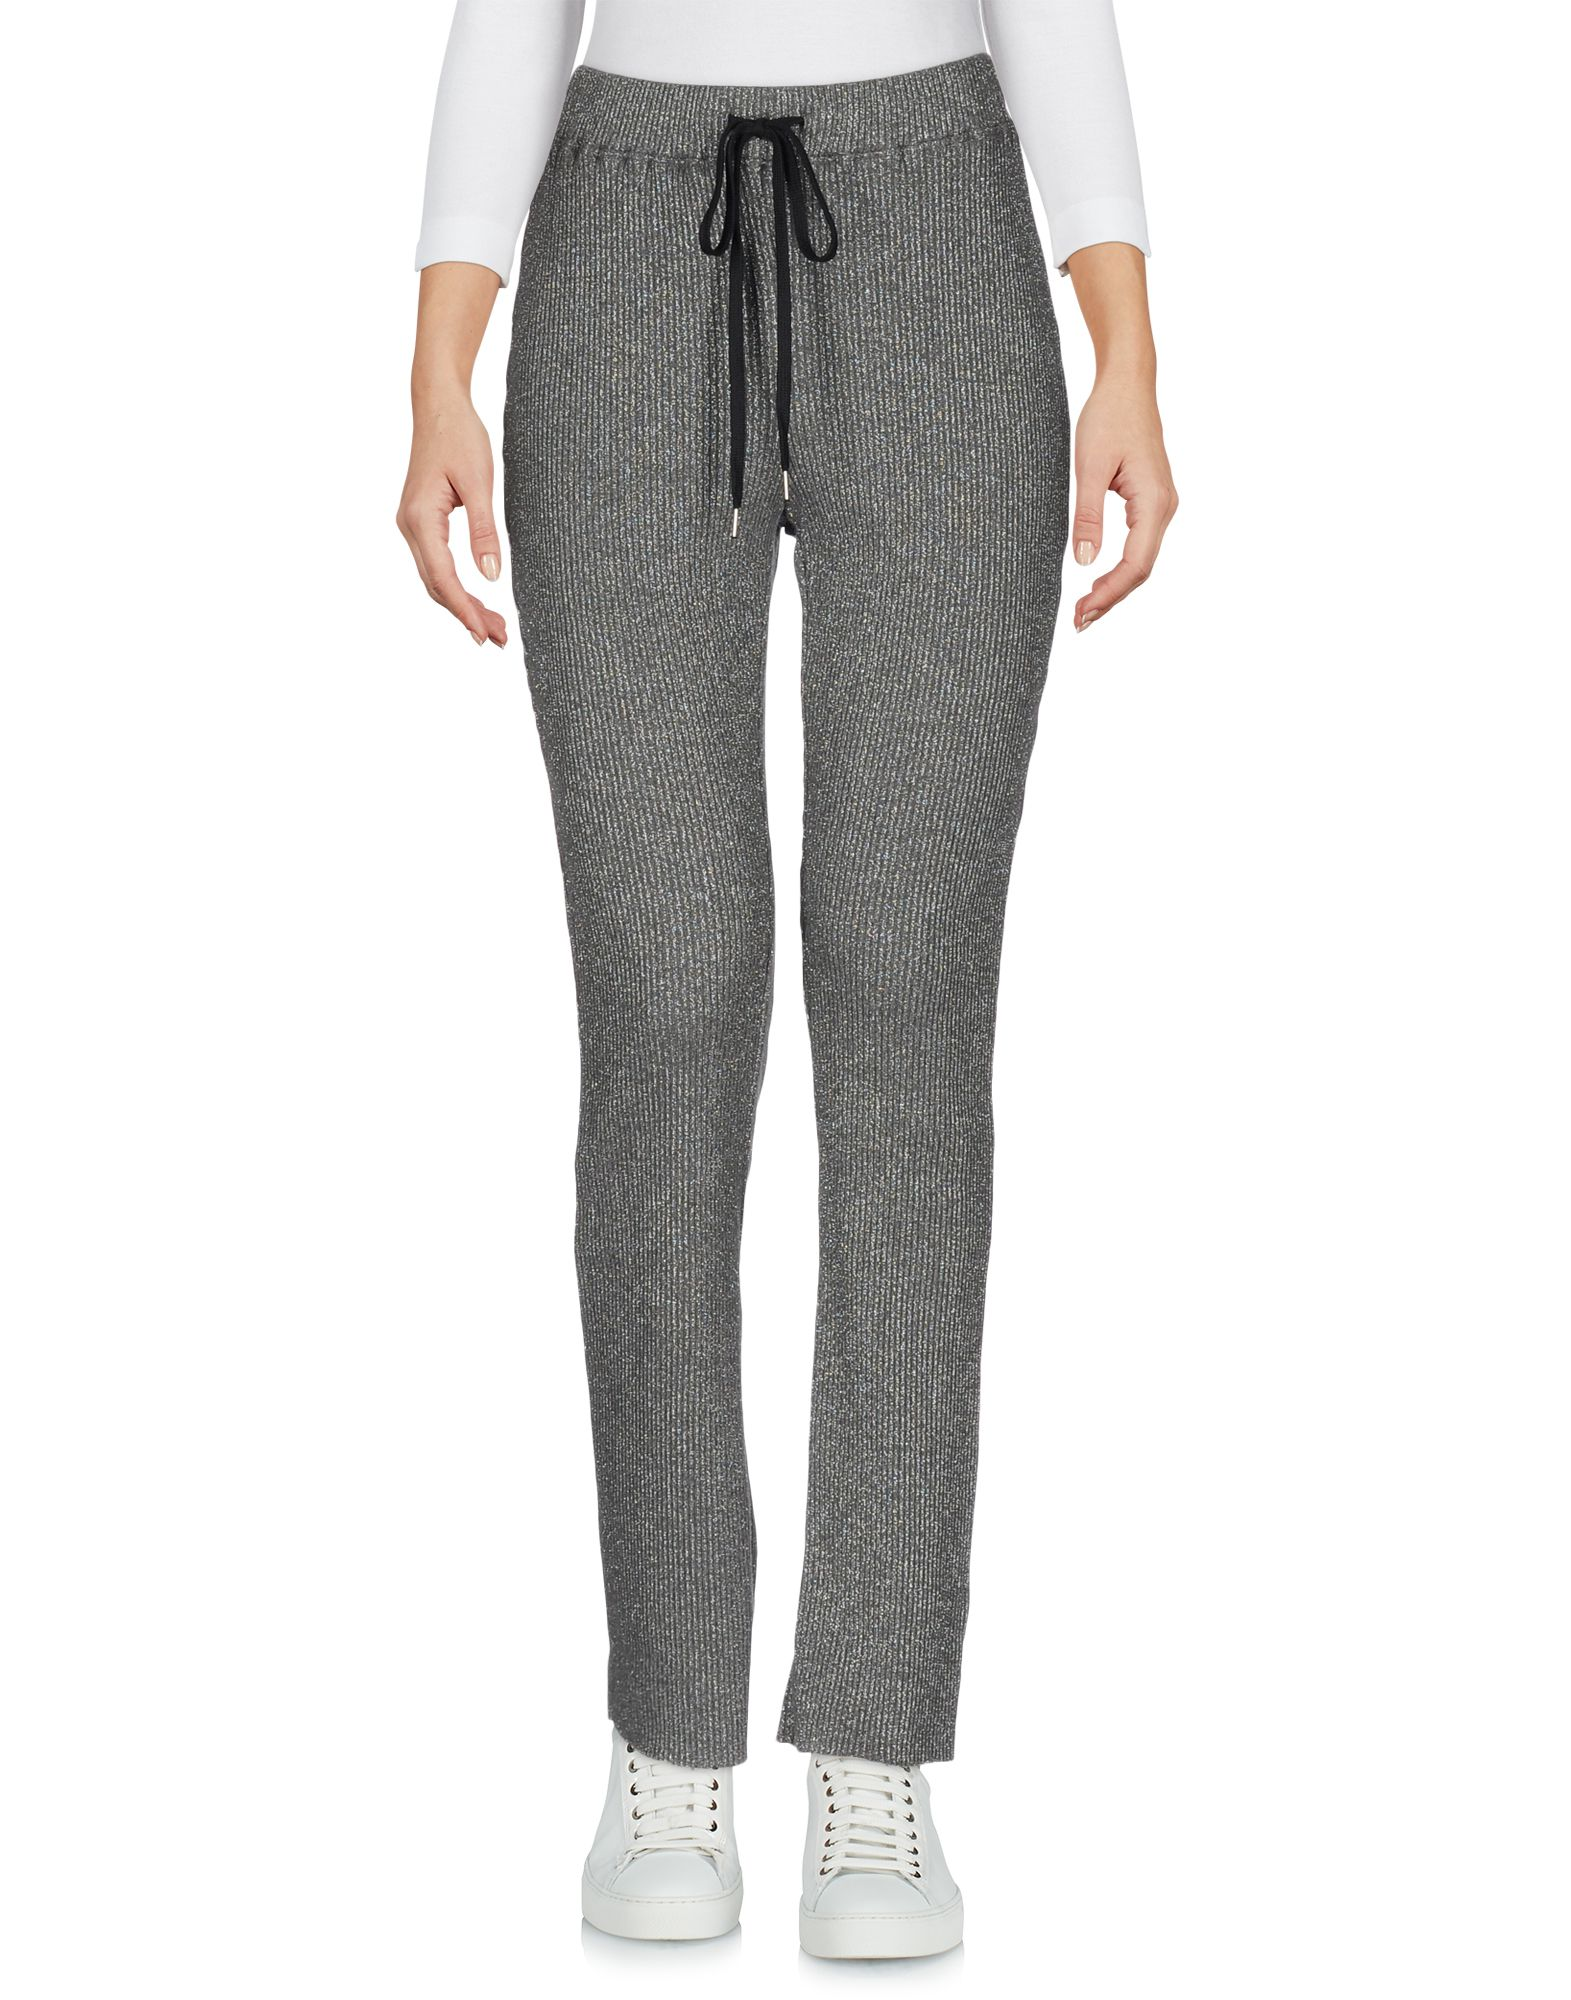 FLEAMADONNA Casual Pants in Grey